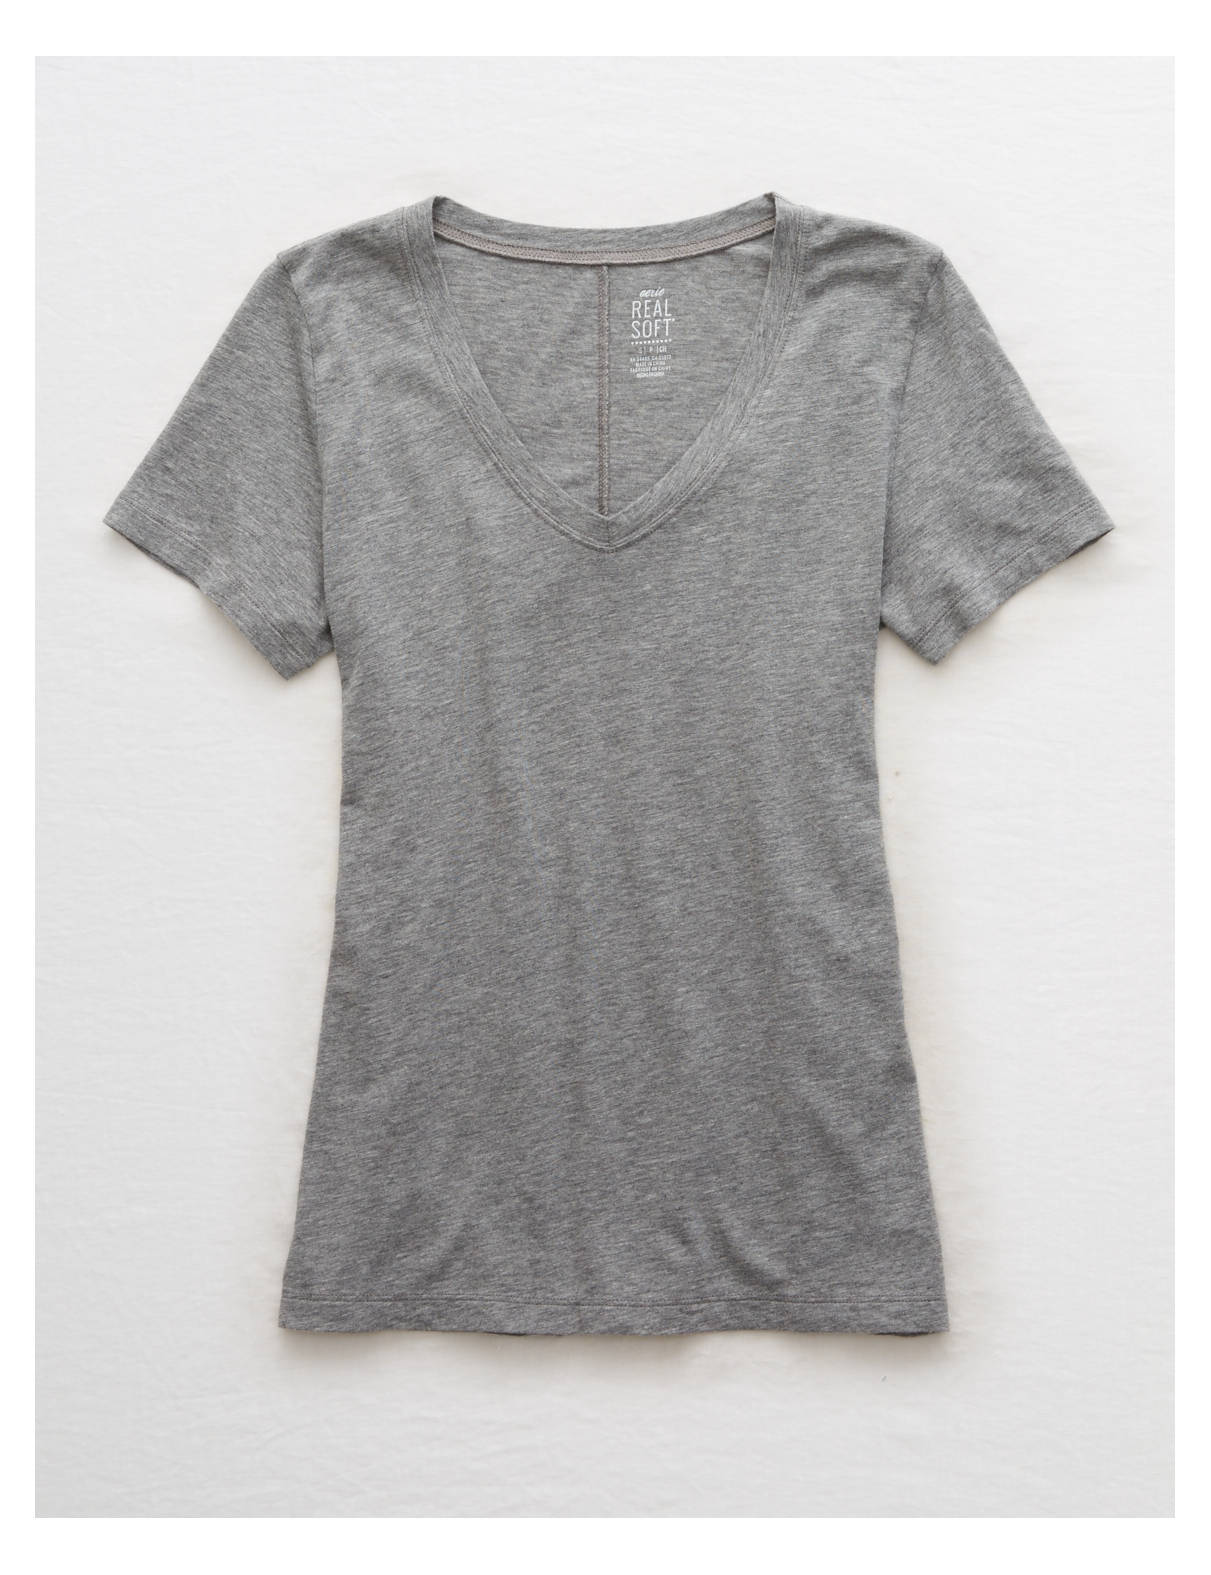 Aerie Real Soft(R) V-Neck Tee